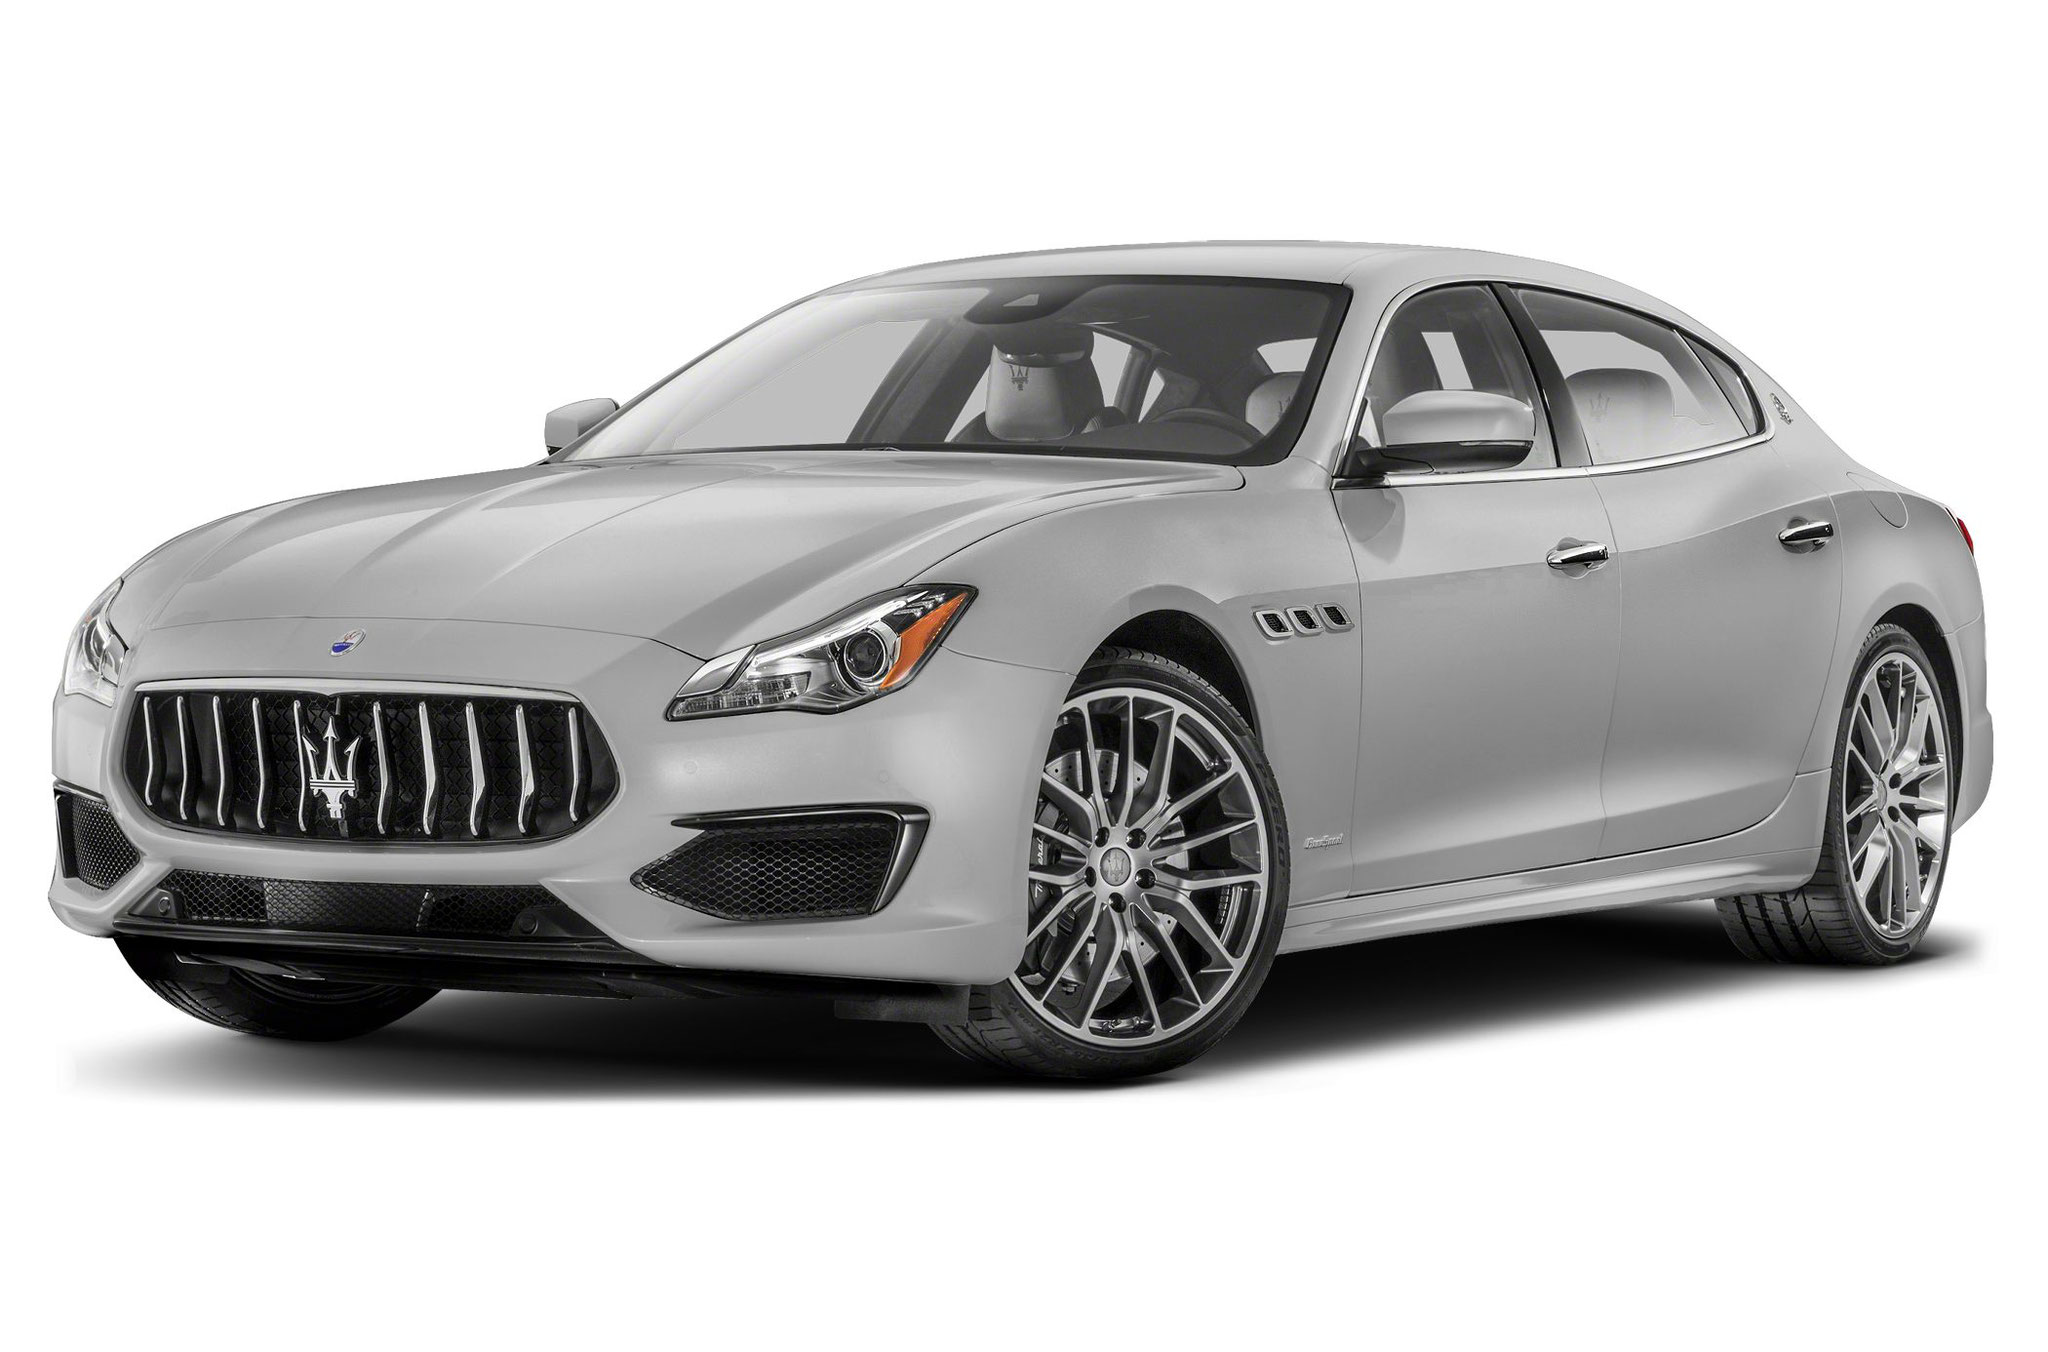 80 Maserati Pdf Manuals Download For Free Ar Manual Wiring 2003 Coupe Fuse Box Quattroporte